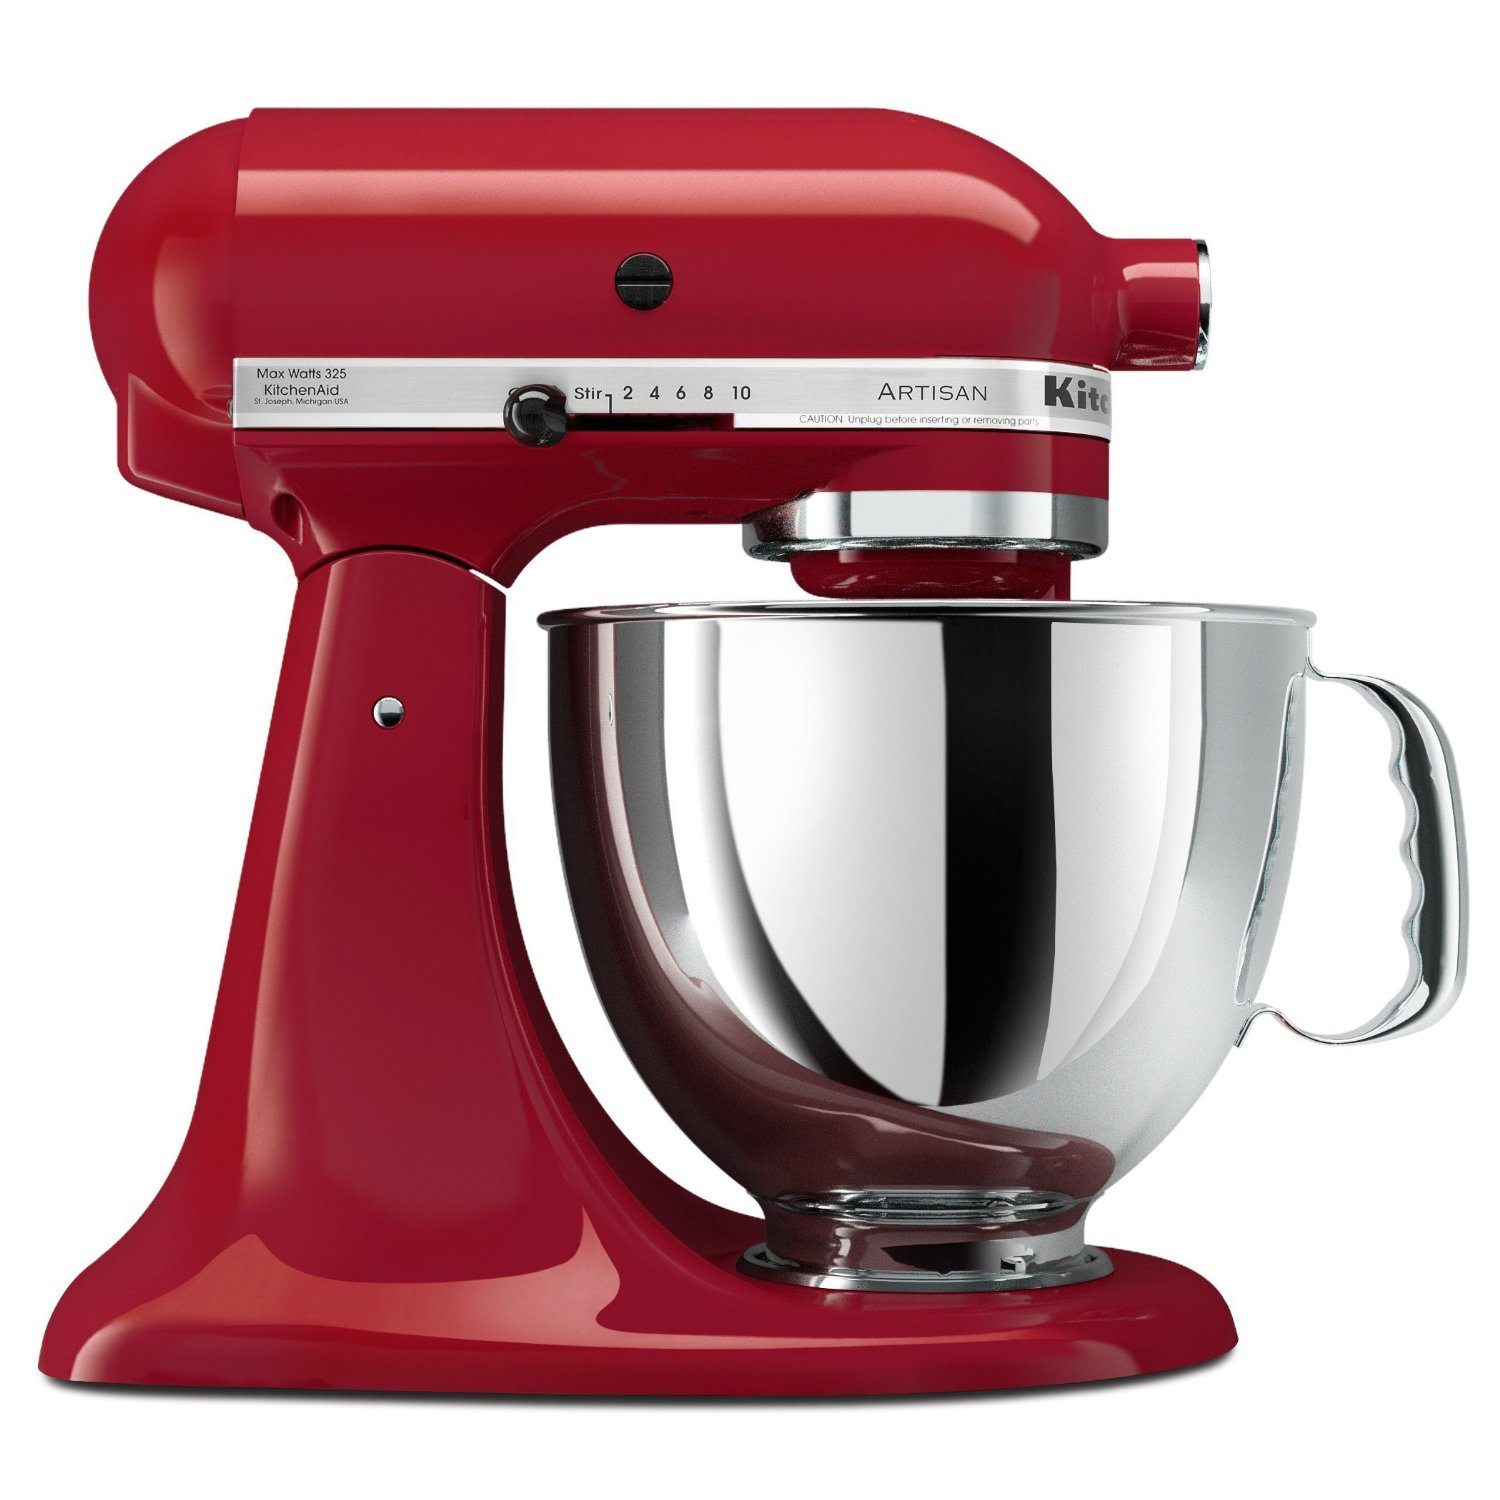 Kitchenaid Stand Mixer Blue Viewing Gallery For - Kitchen Mixer